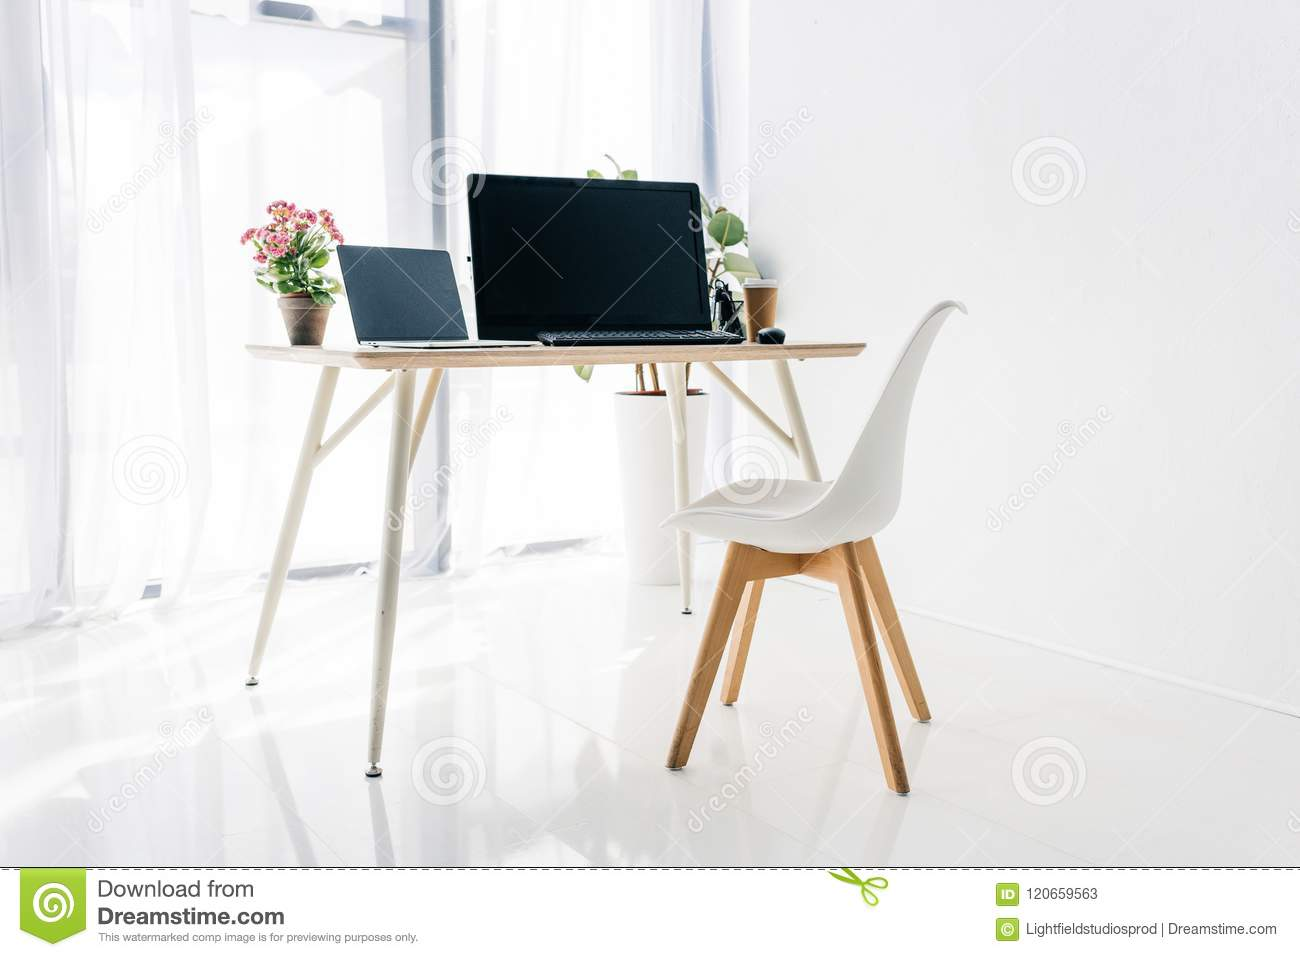 interior of workplace with chair, potted plants, laptop and computer